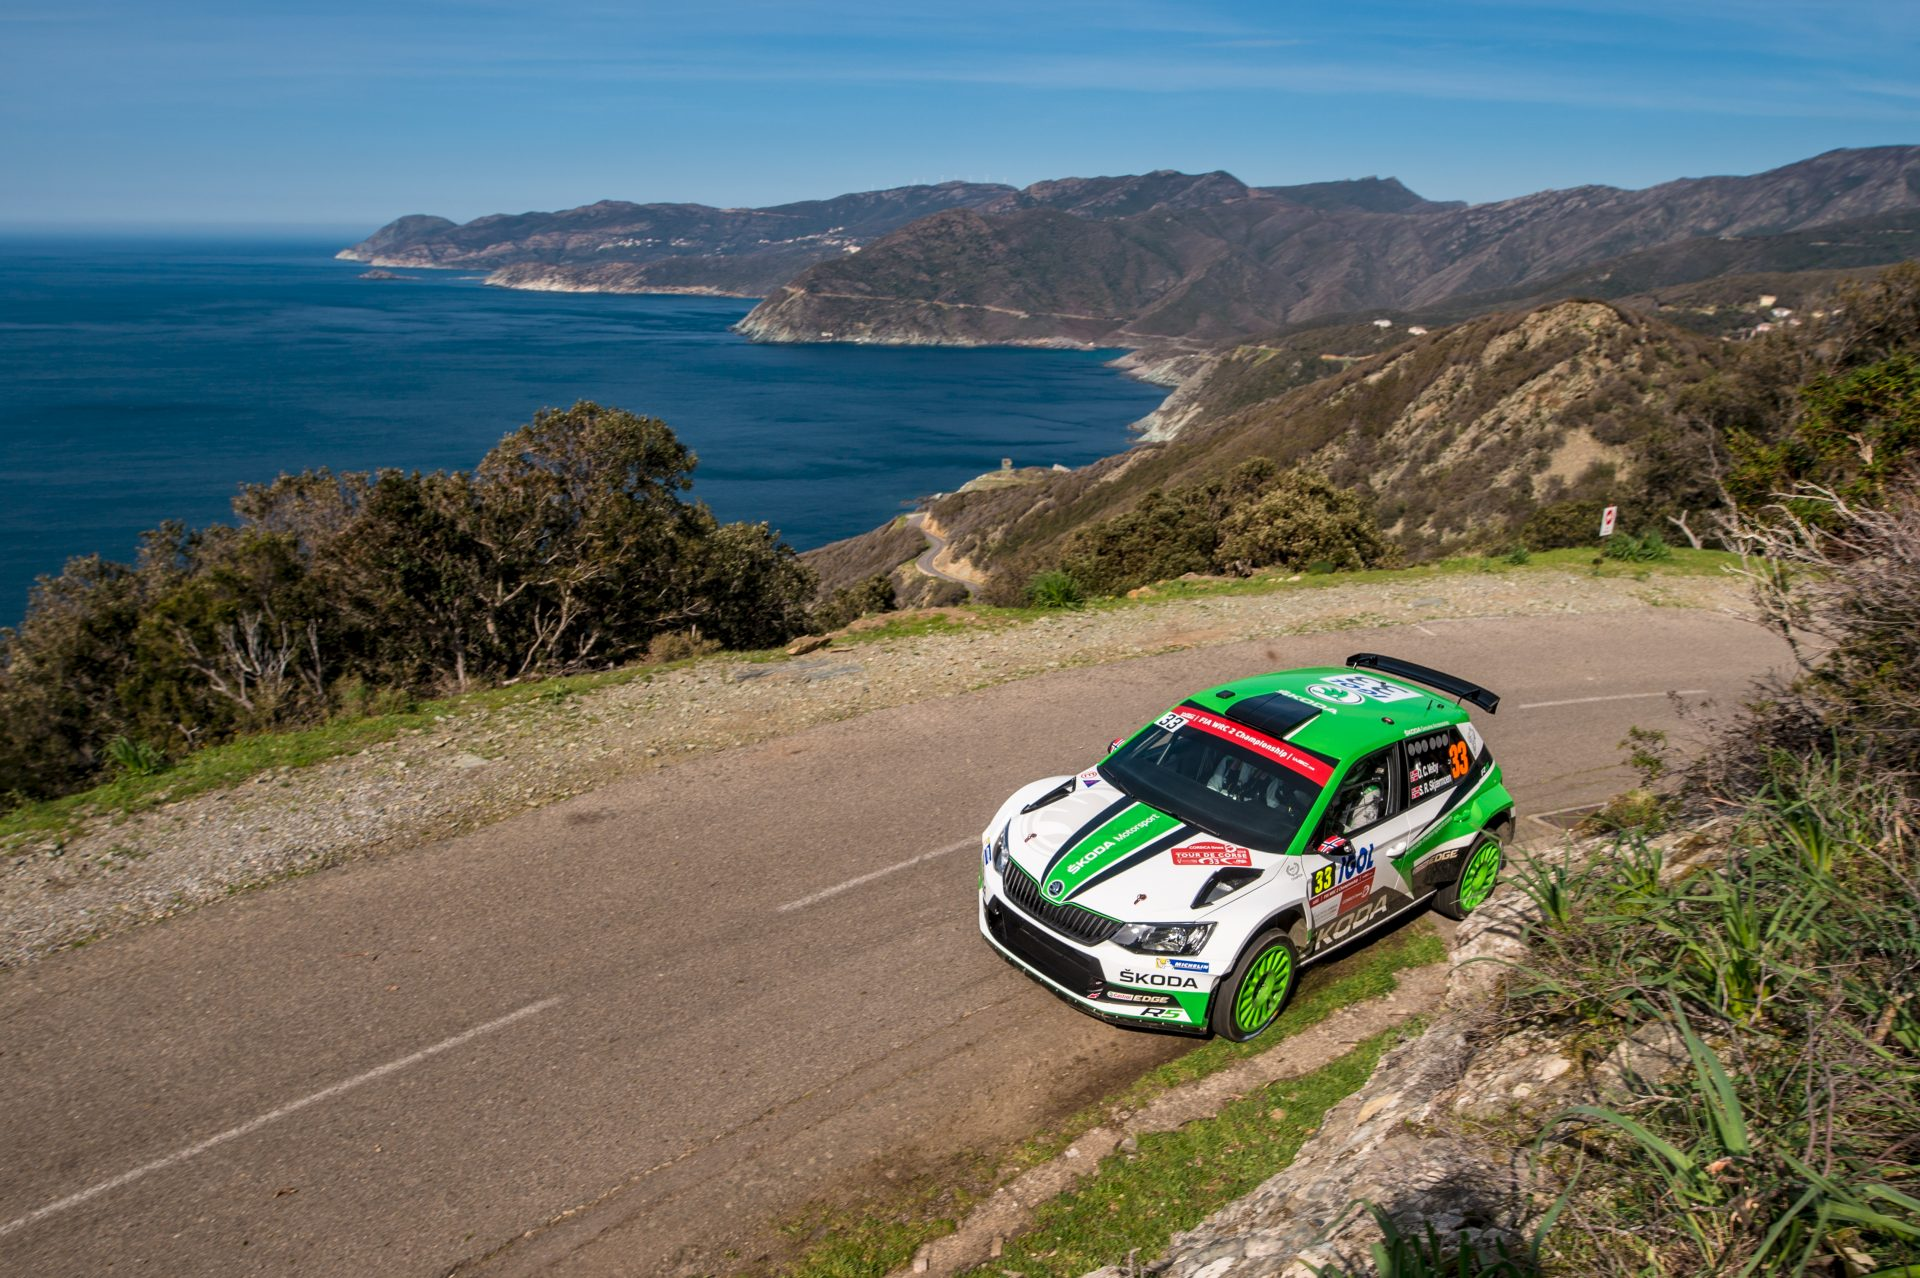 Tour de Corse News: Kopecký Won, FABIA R5s in 4 of 5 Top Places (UPDATED)